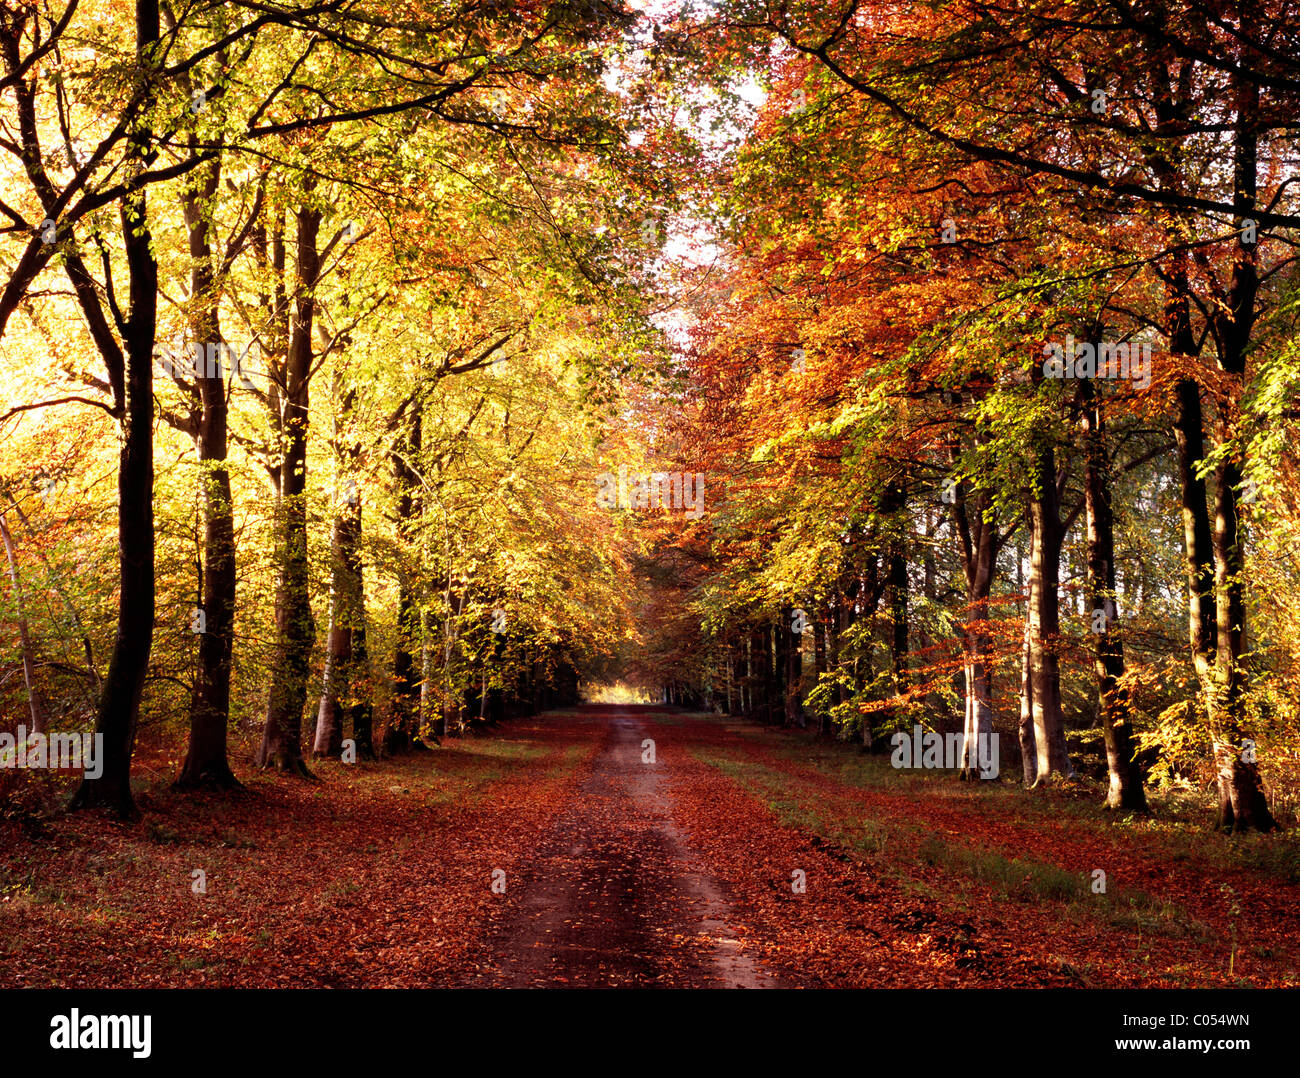 The long avenue of beech trees known as First Broad Drive running through Grovely Wood in Wiltshire, England. Stock Photo